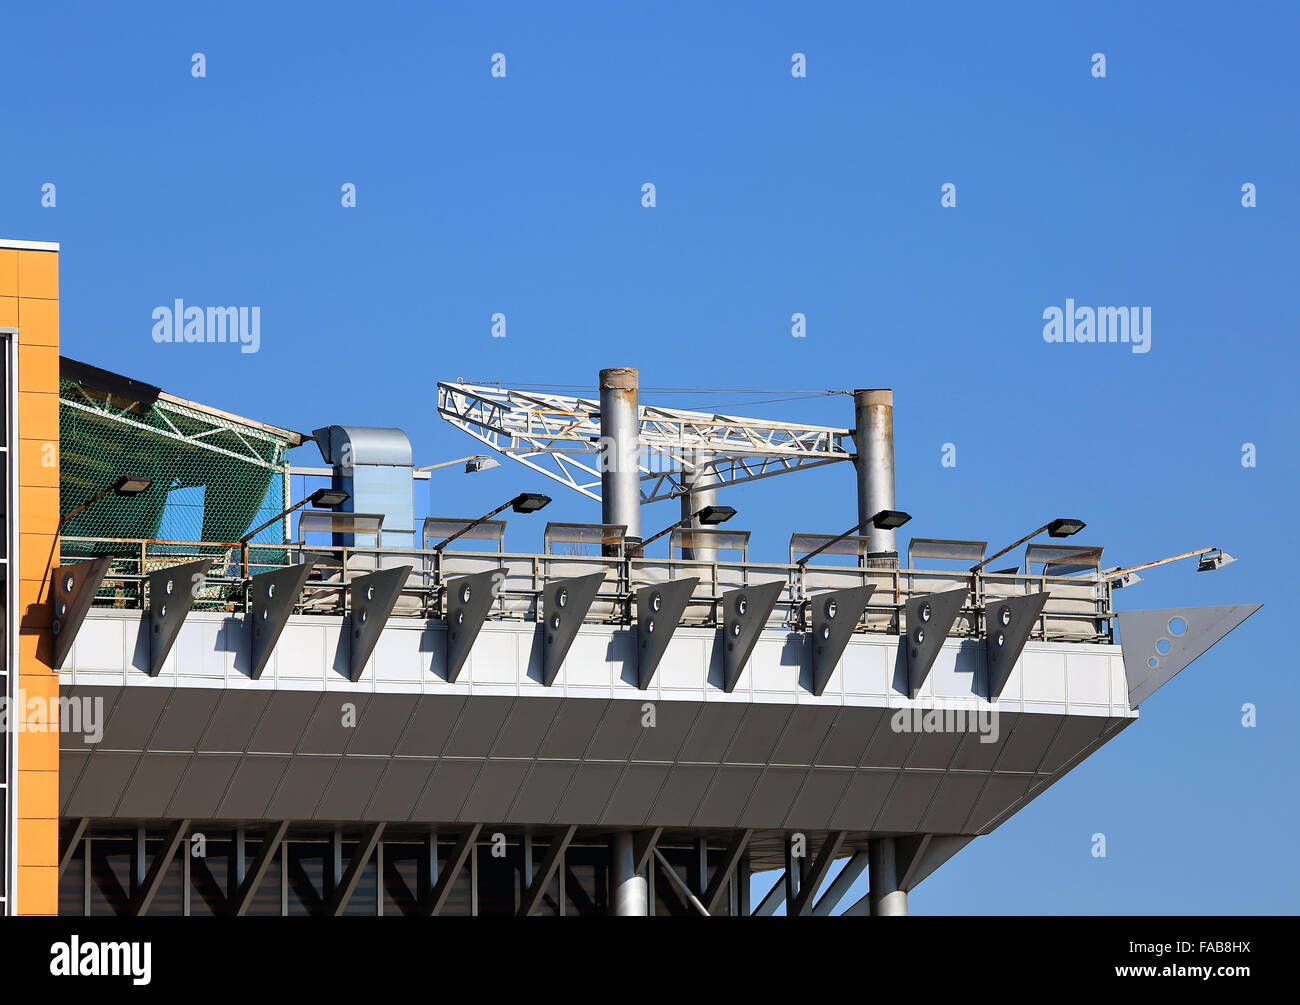 Structural constructs of steel elements on an industrial building - Stock Image